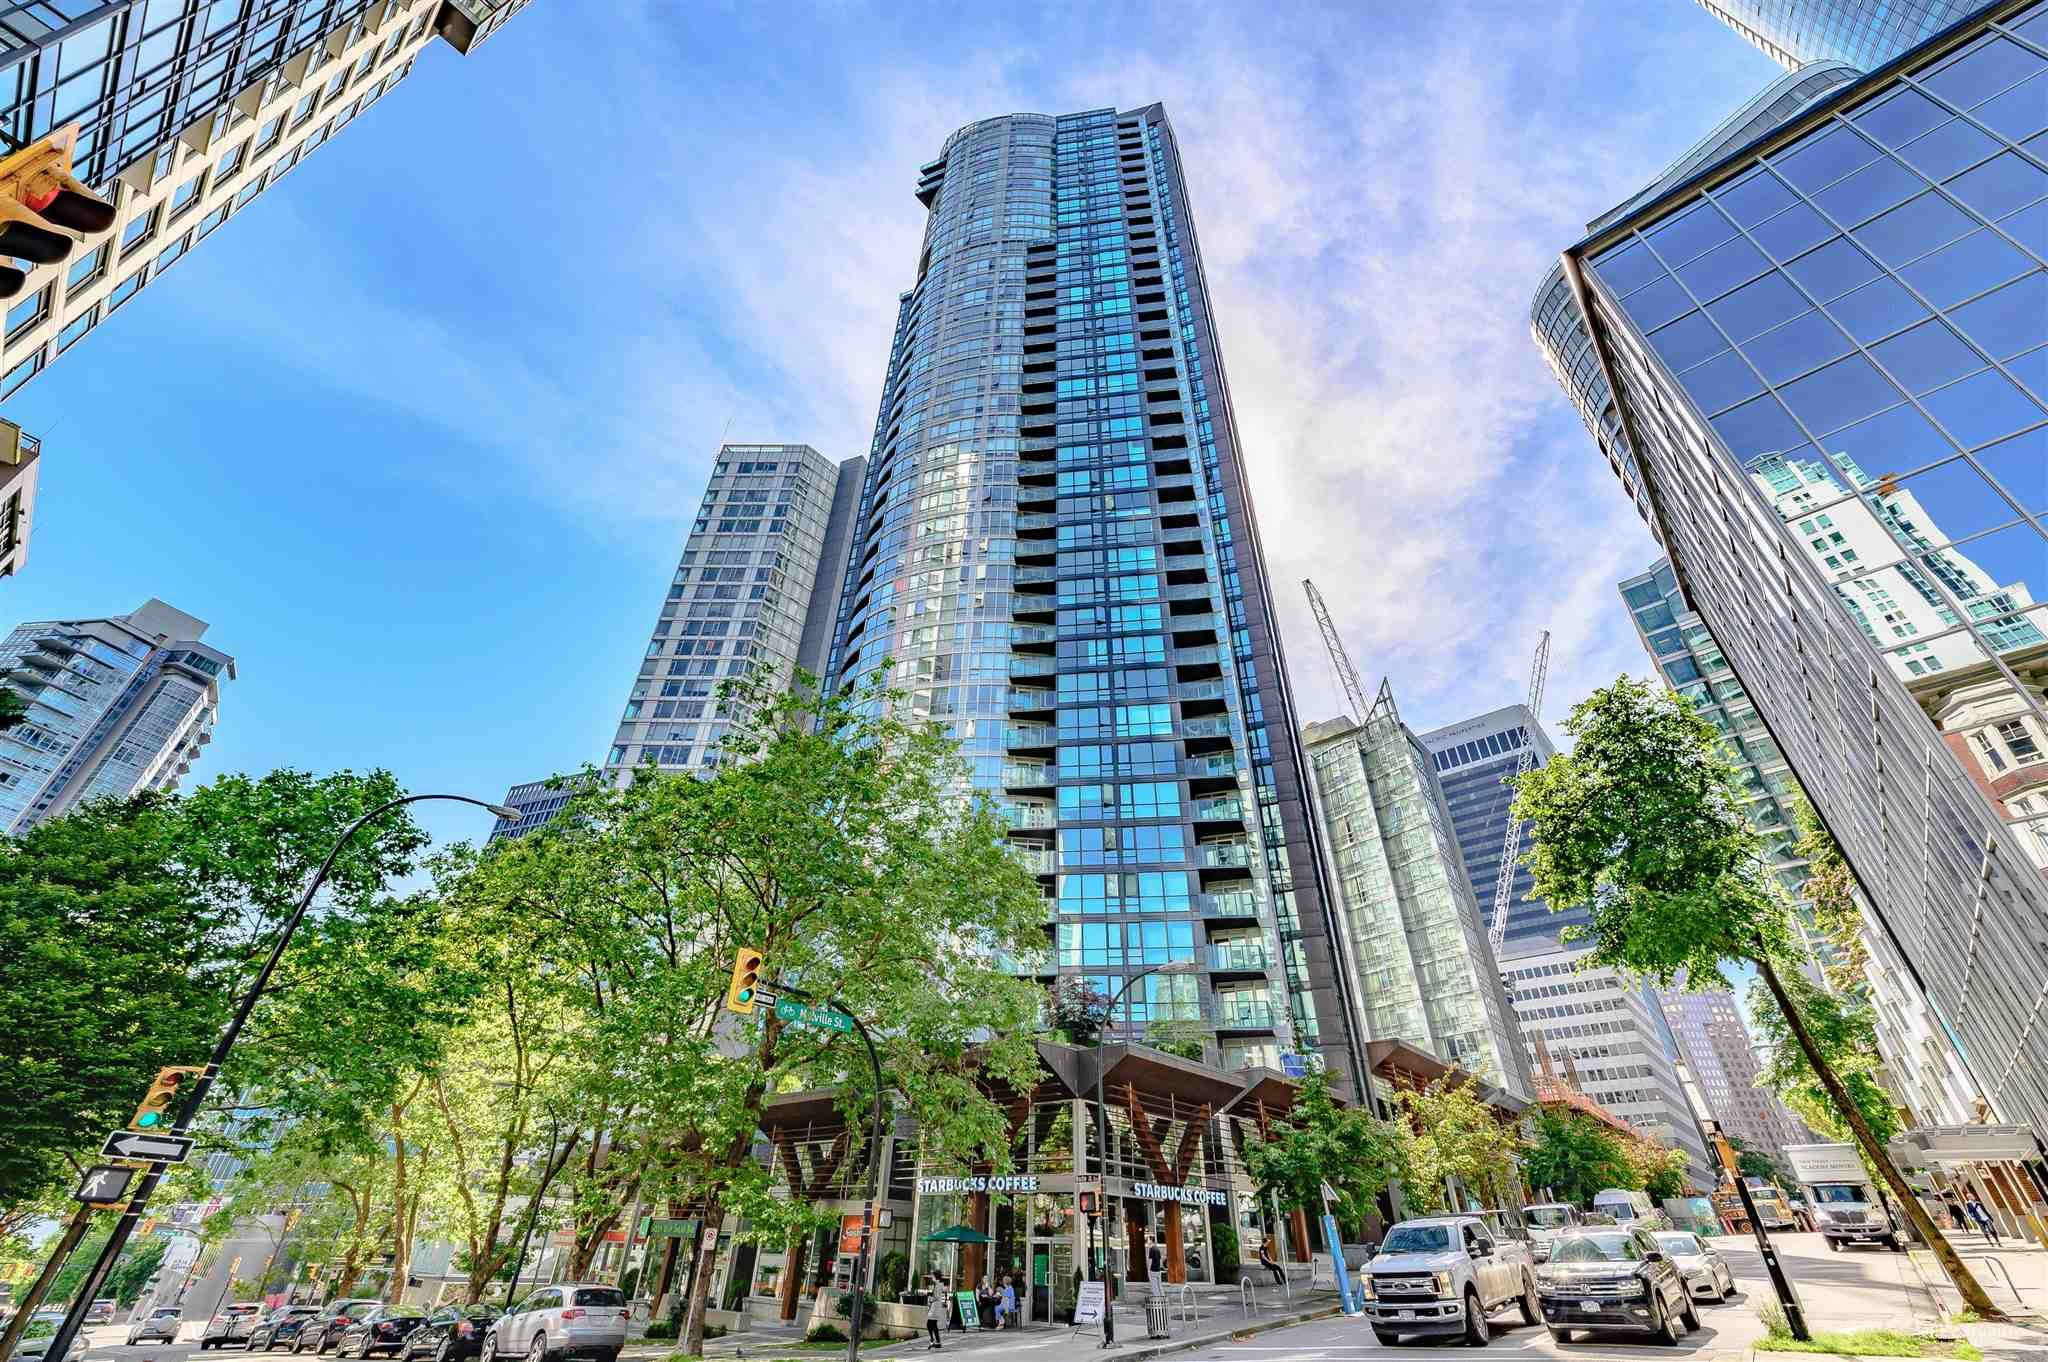 Main Photo: 2907 1189 MELVILLE Street in Vancouver: Coal Harbour Condo for sale (Vancouver West)  : MLS®# R2603117